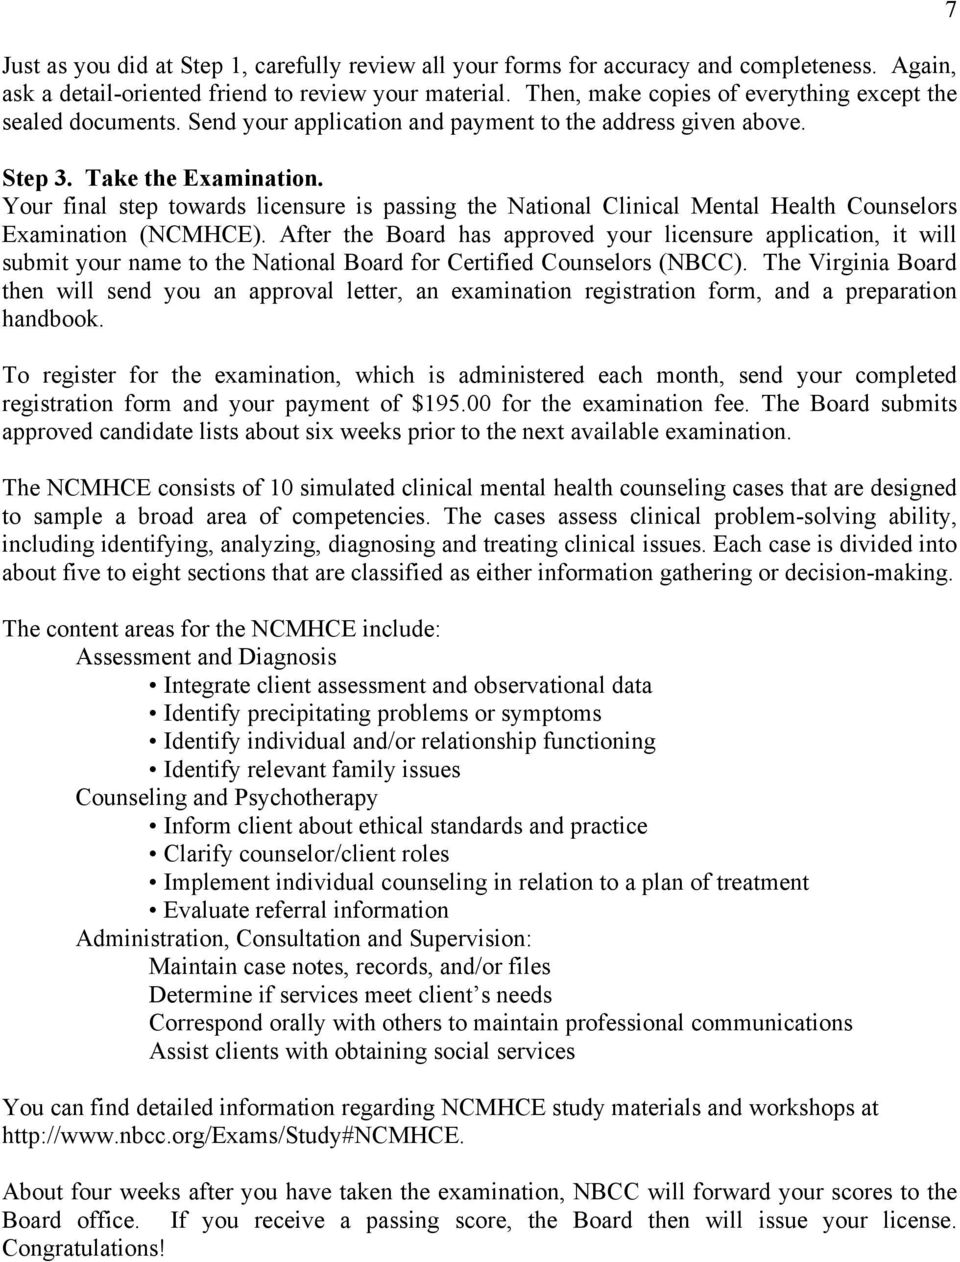 Your final step towards licensure is passing the National Clinical Mental Health Counselors Examination (NCMHCE).